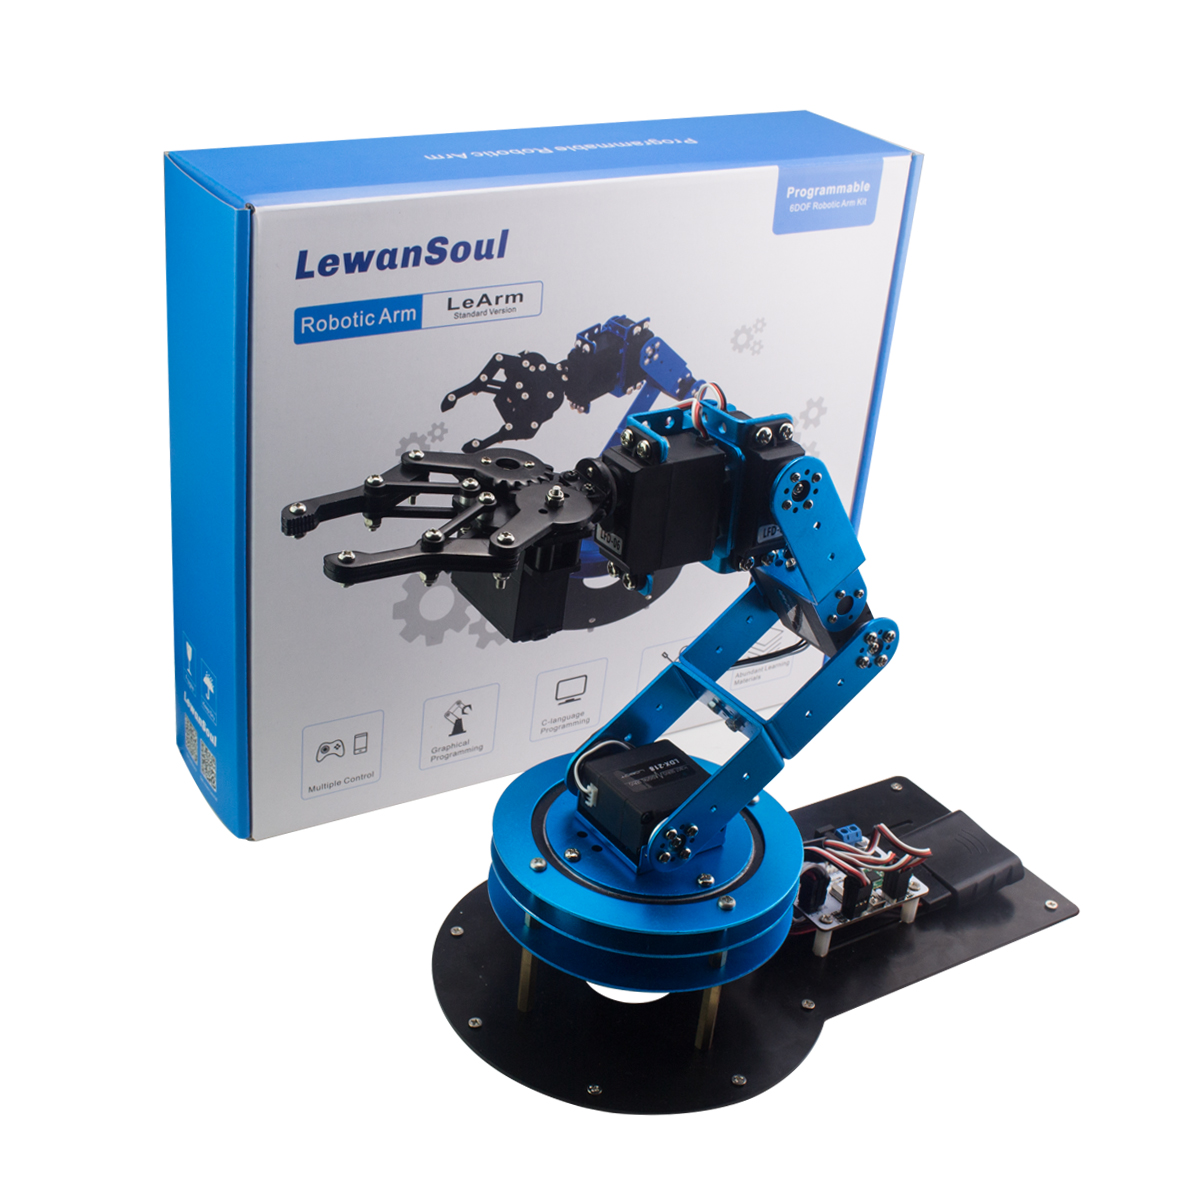 6-DOF Mechnical Arm with Controller PS2 Wireless Handle /Flexible educational robotic arm